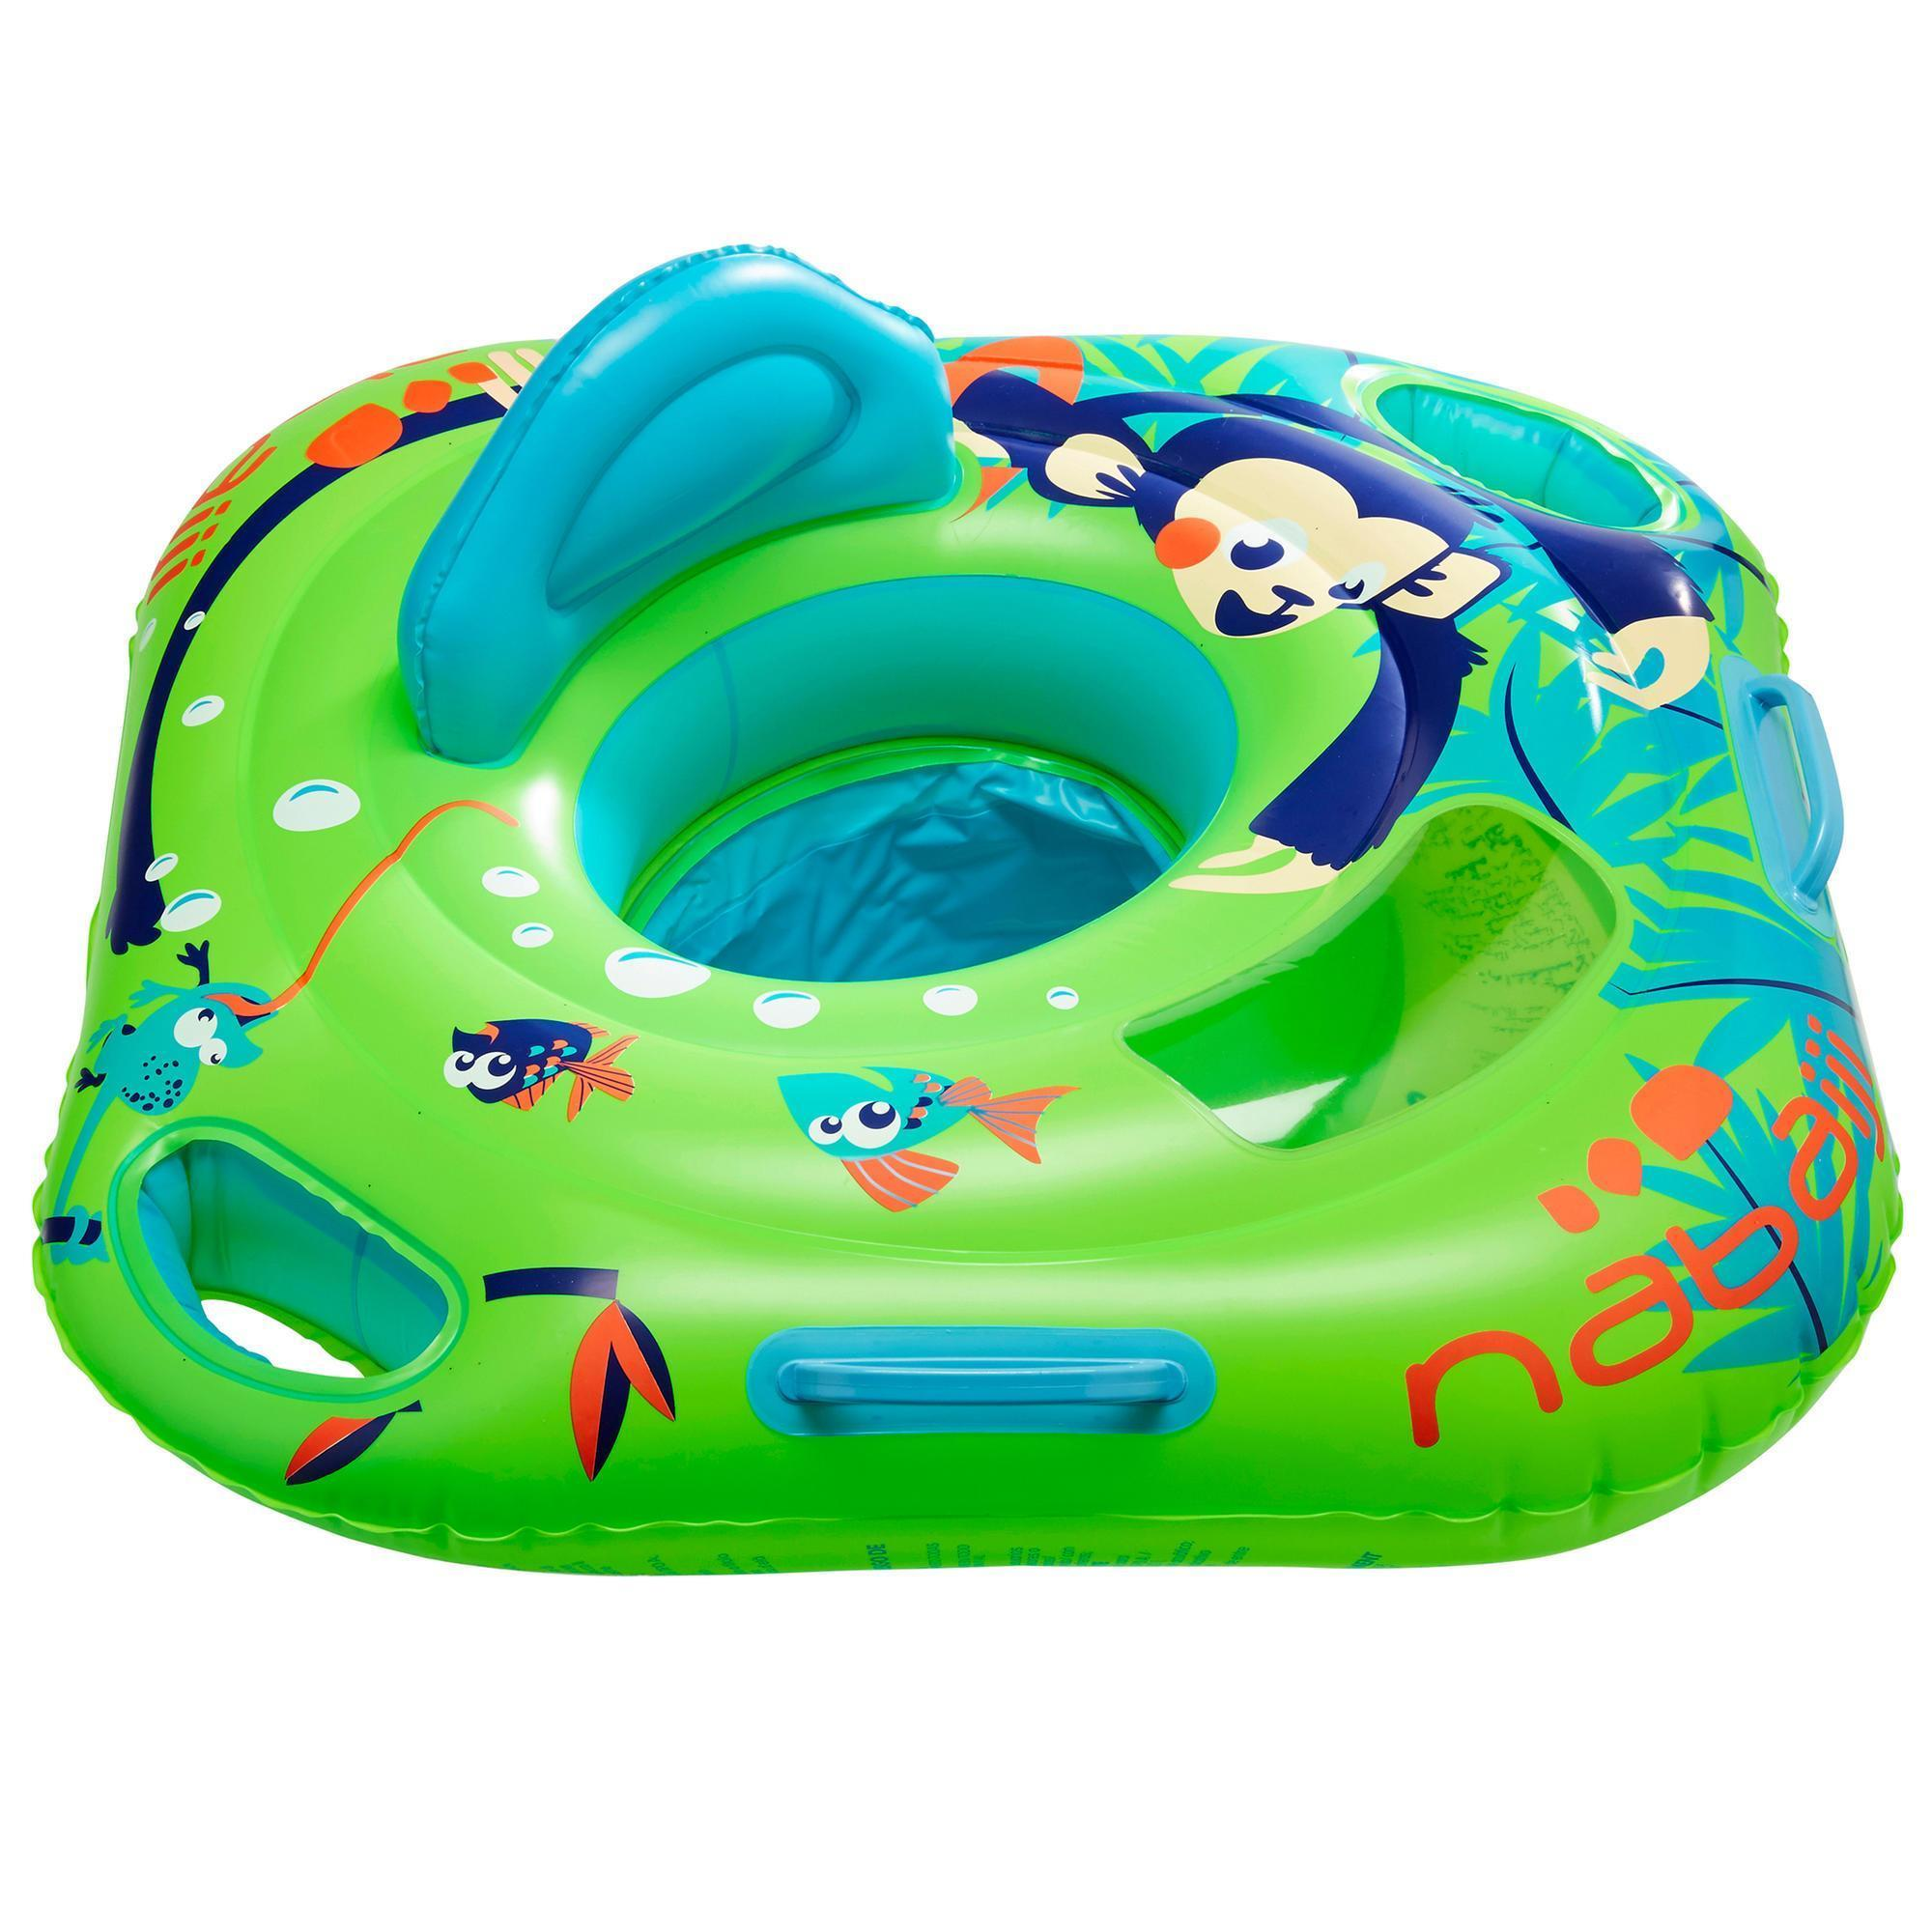 Baby Seat Swim Ring with Window and Handles - Monkey | Nabaiji